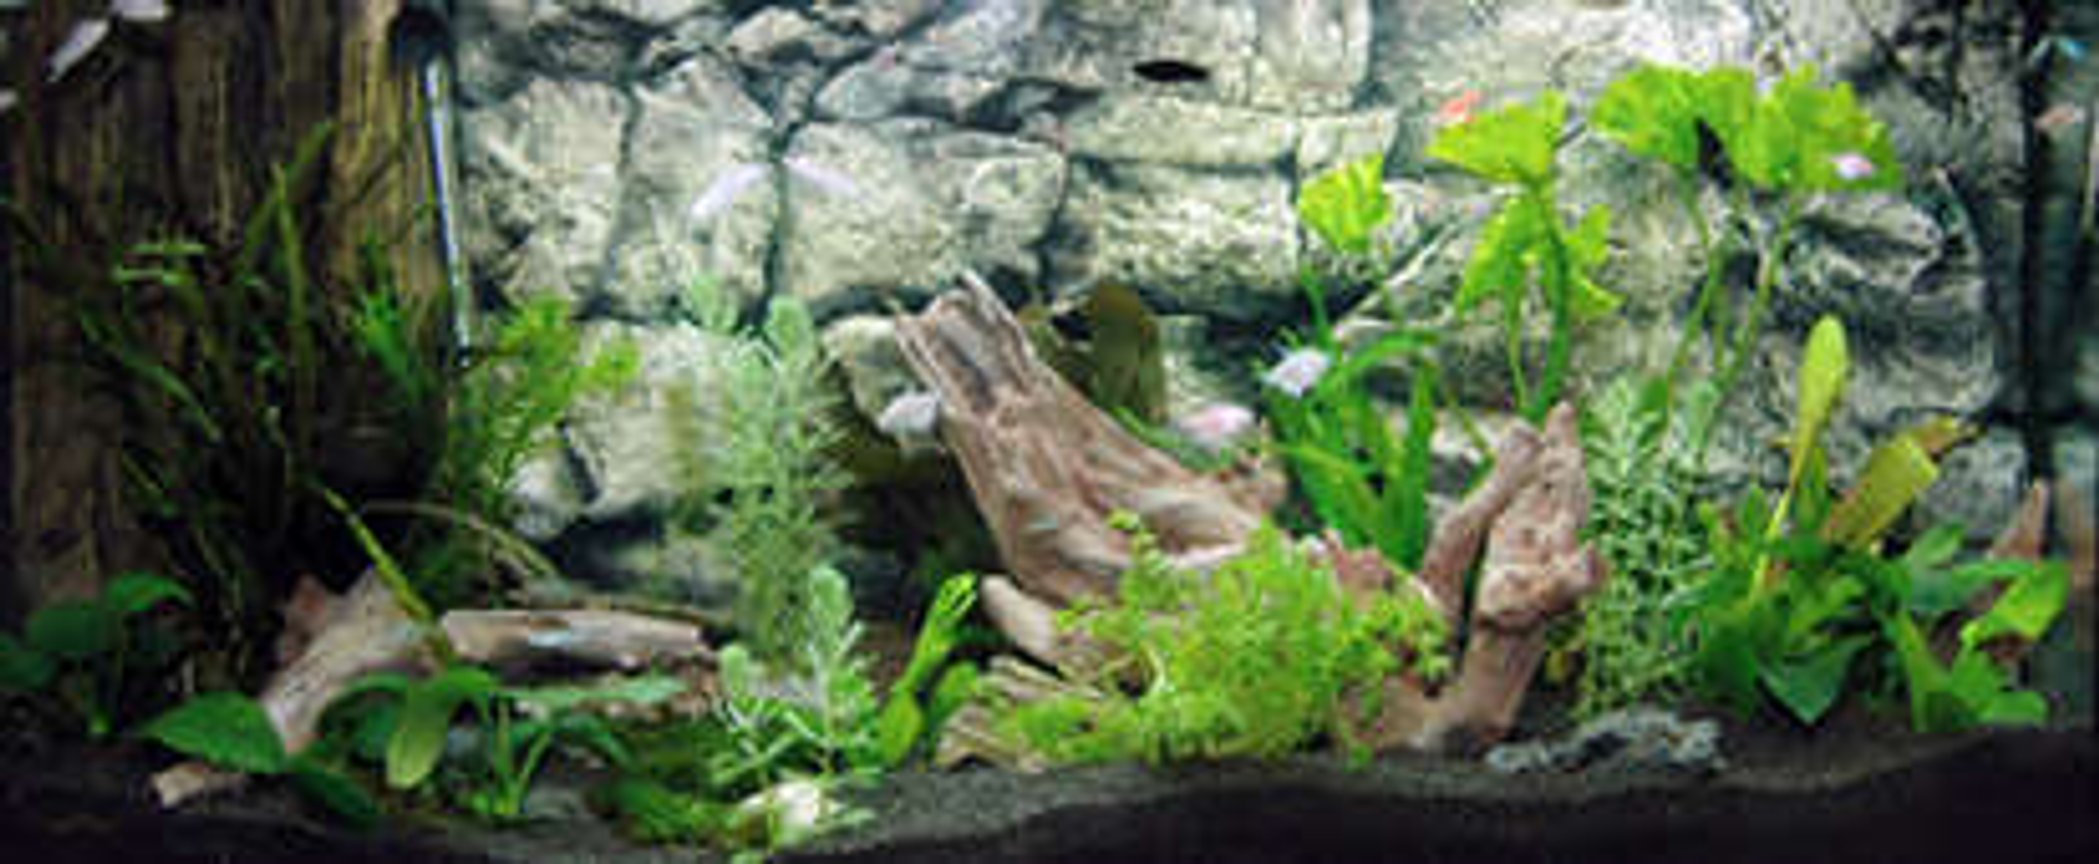 40 gallons planted tank (mostly live plants and fish) - We decorate the aquarium tank with our aquarium decorations